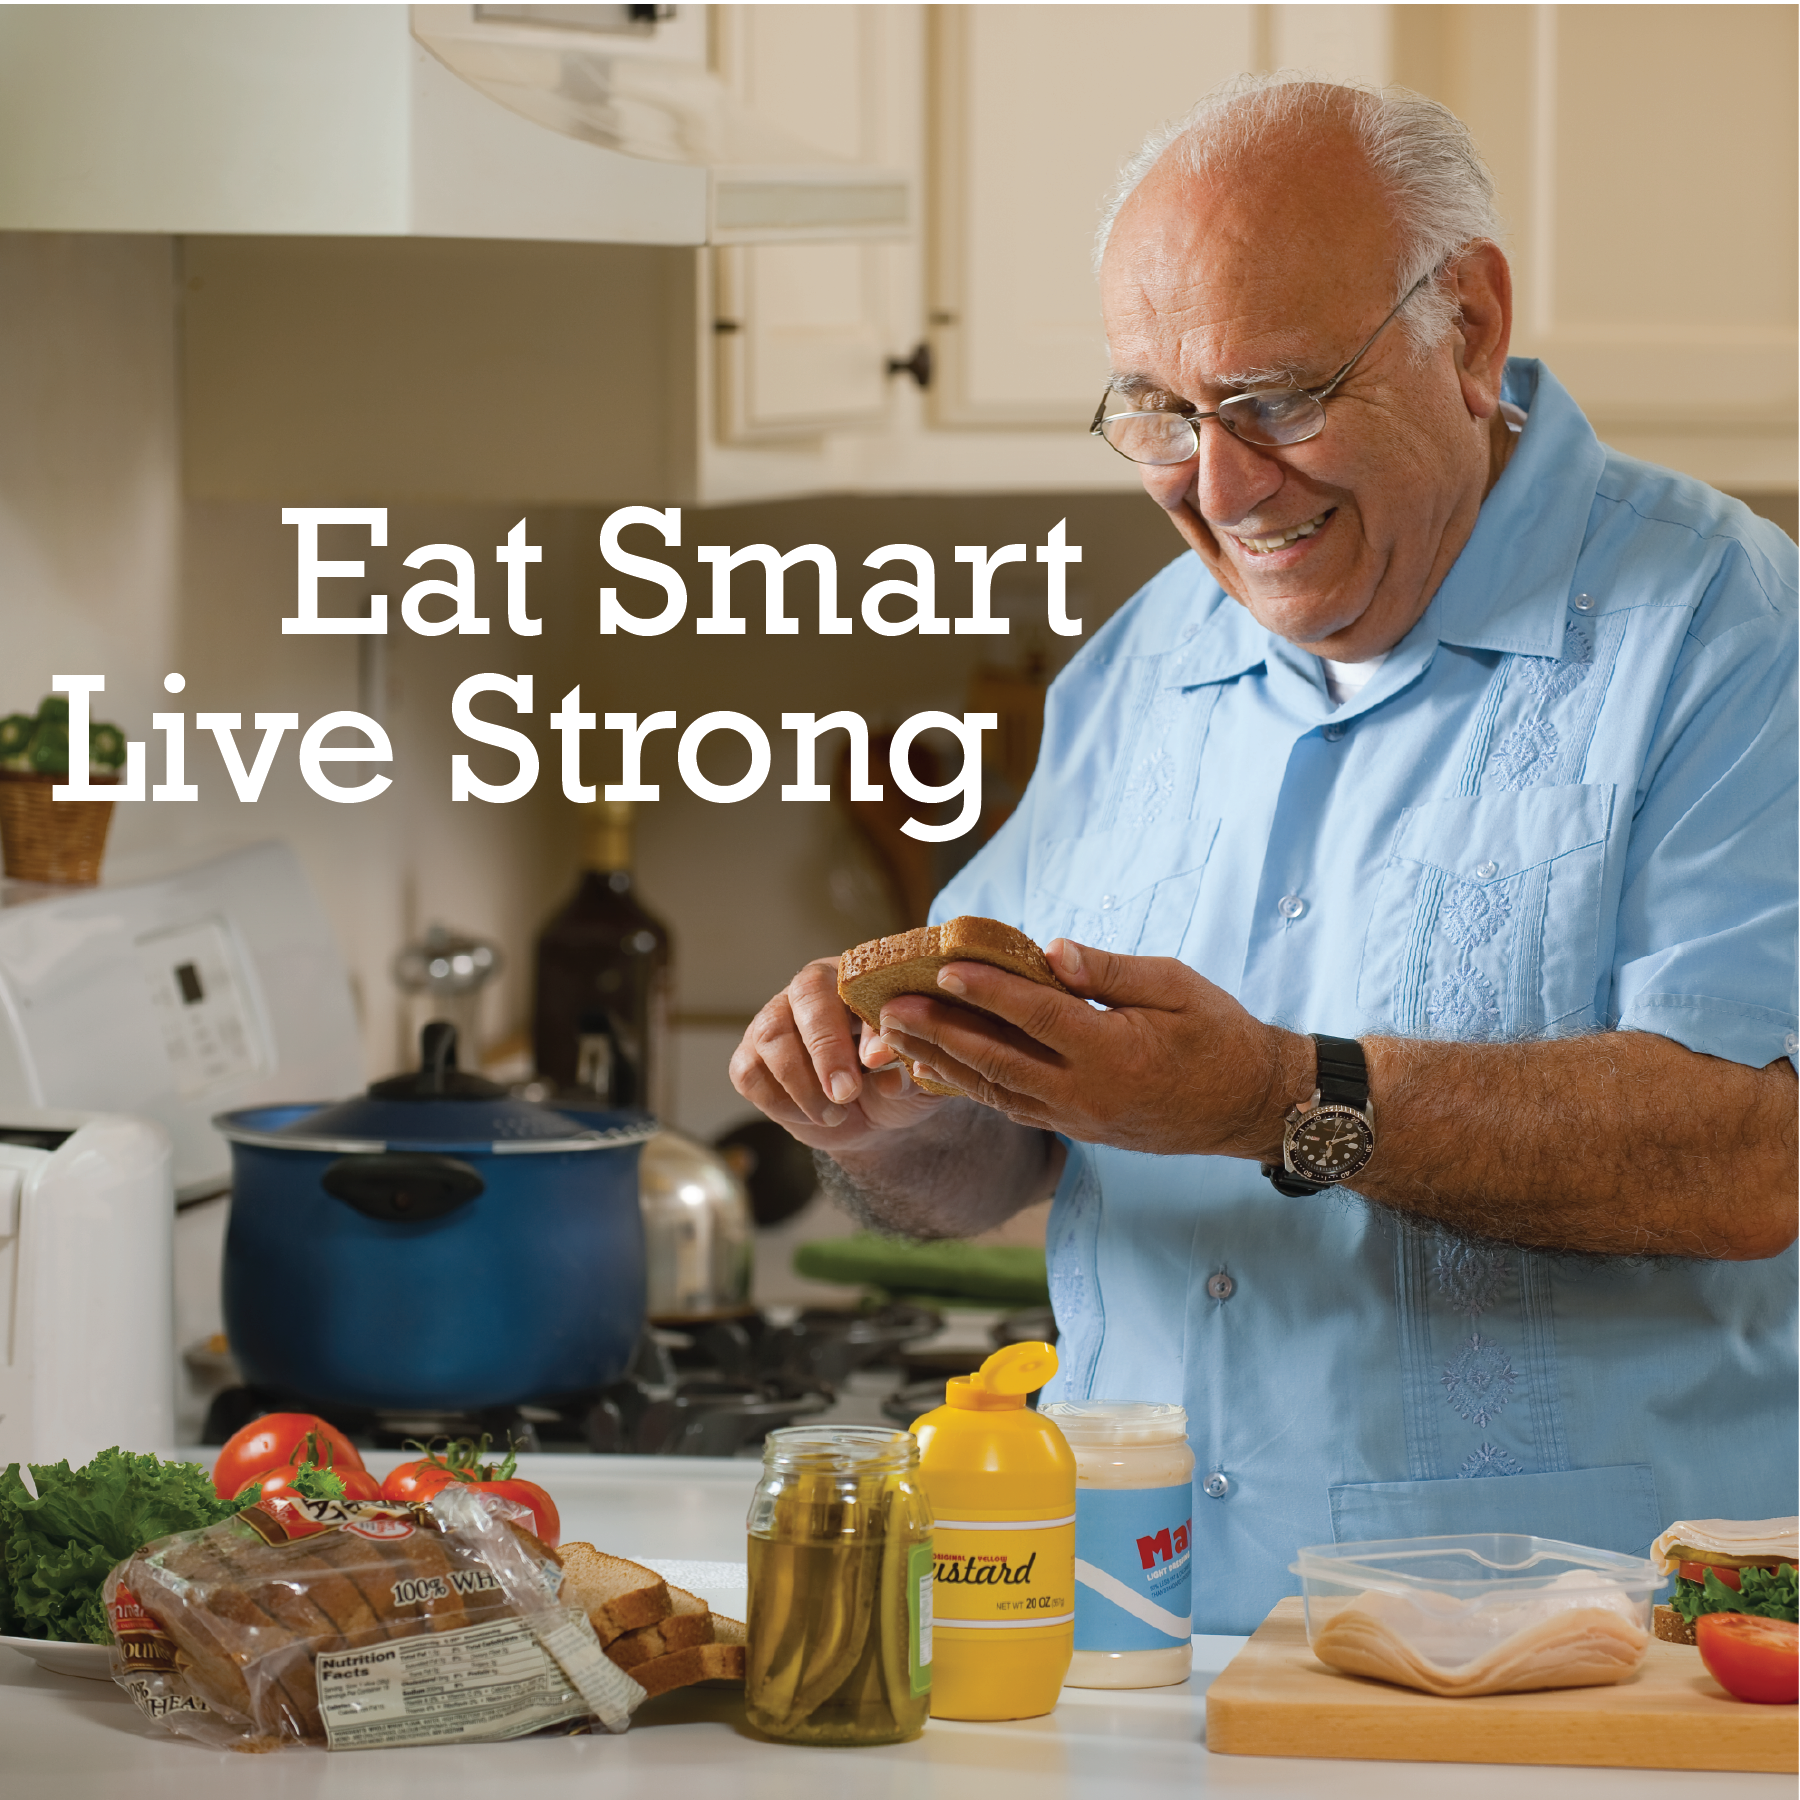 Eat Smart, Live Strong - Reach Your Goals Step by Step